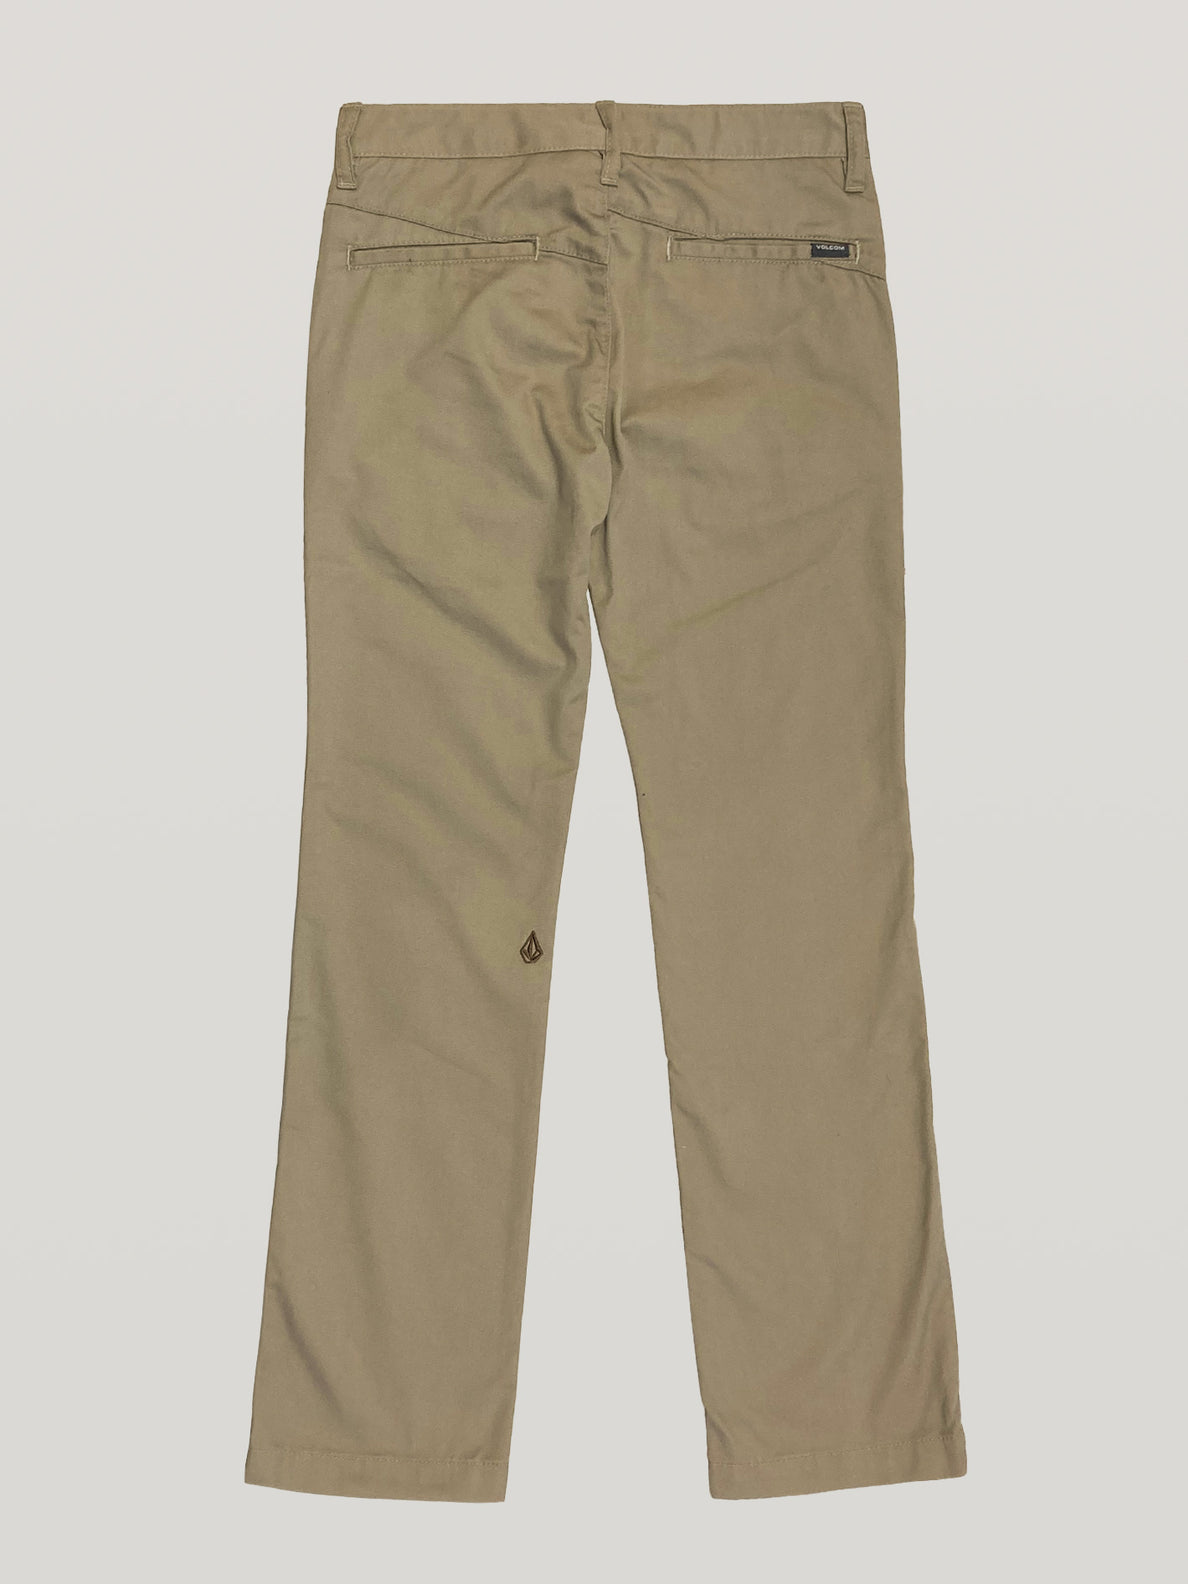 Boys Youth V Monty Pant - Khaki